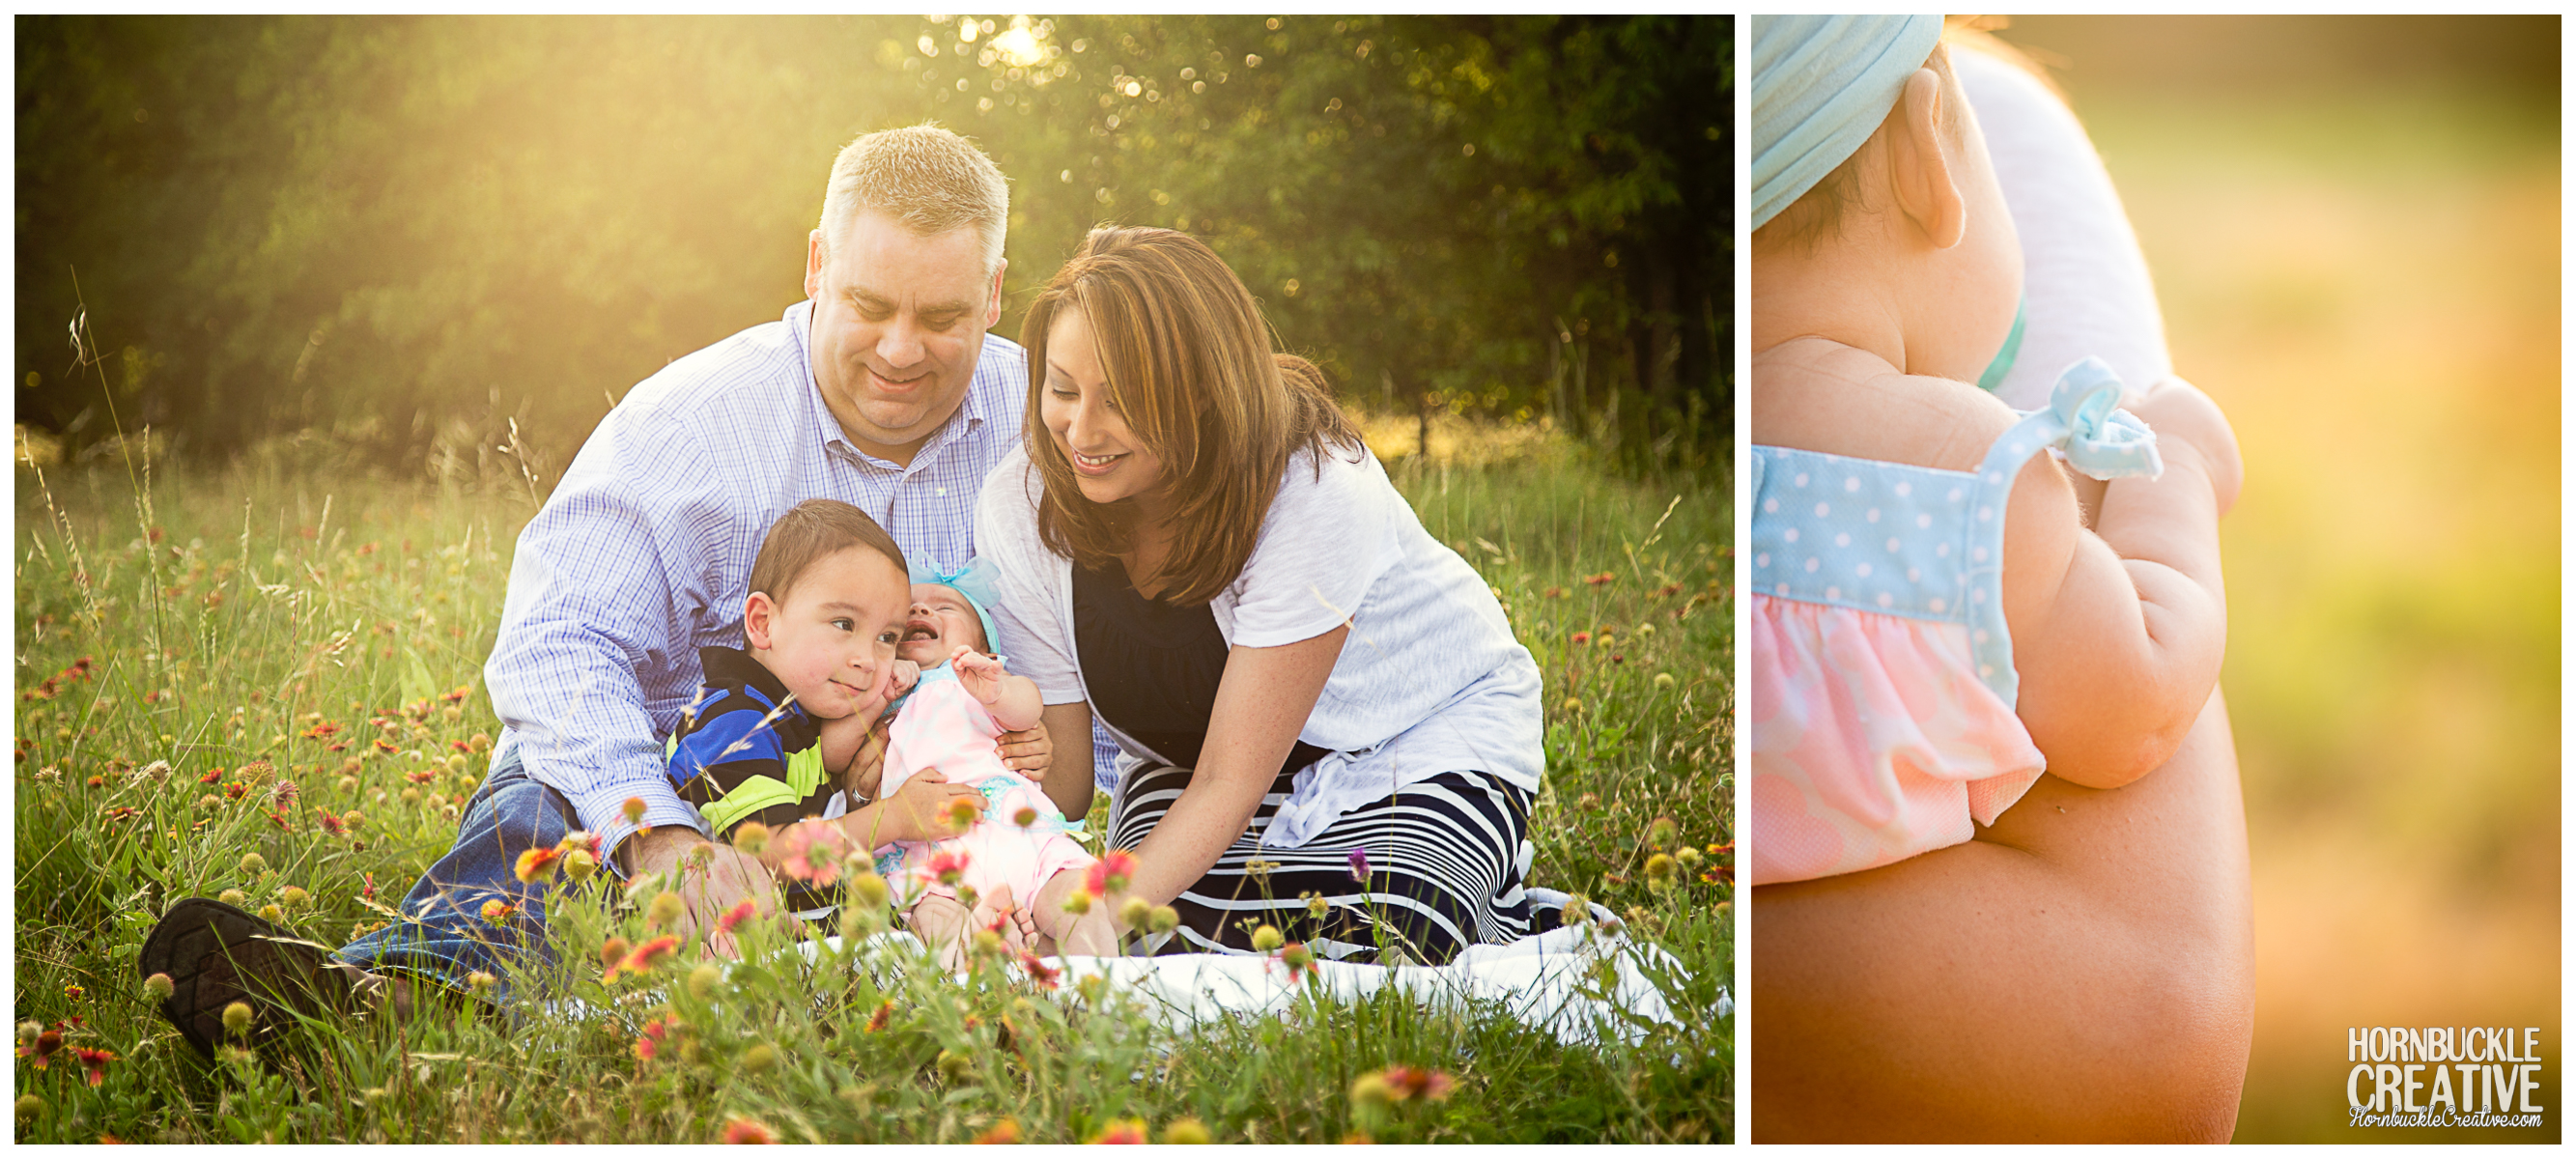 Campbell Family Portrait Photography by Hornbuckle Creative